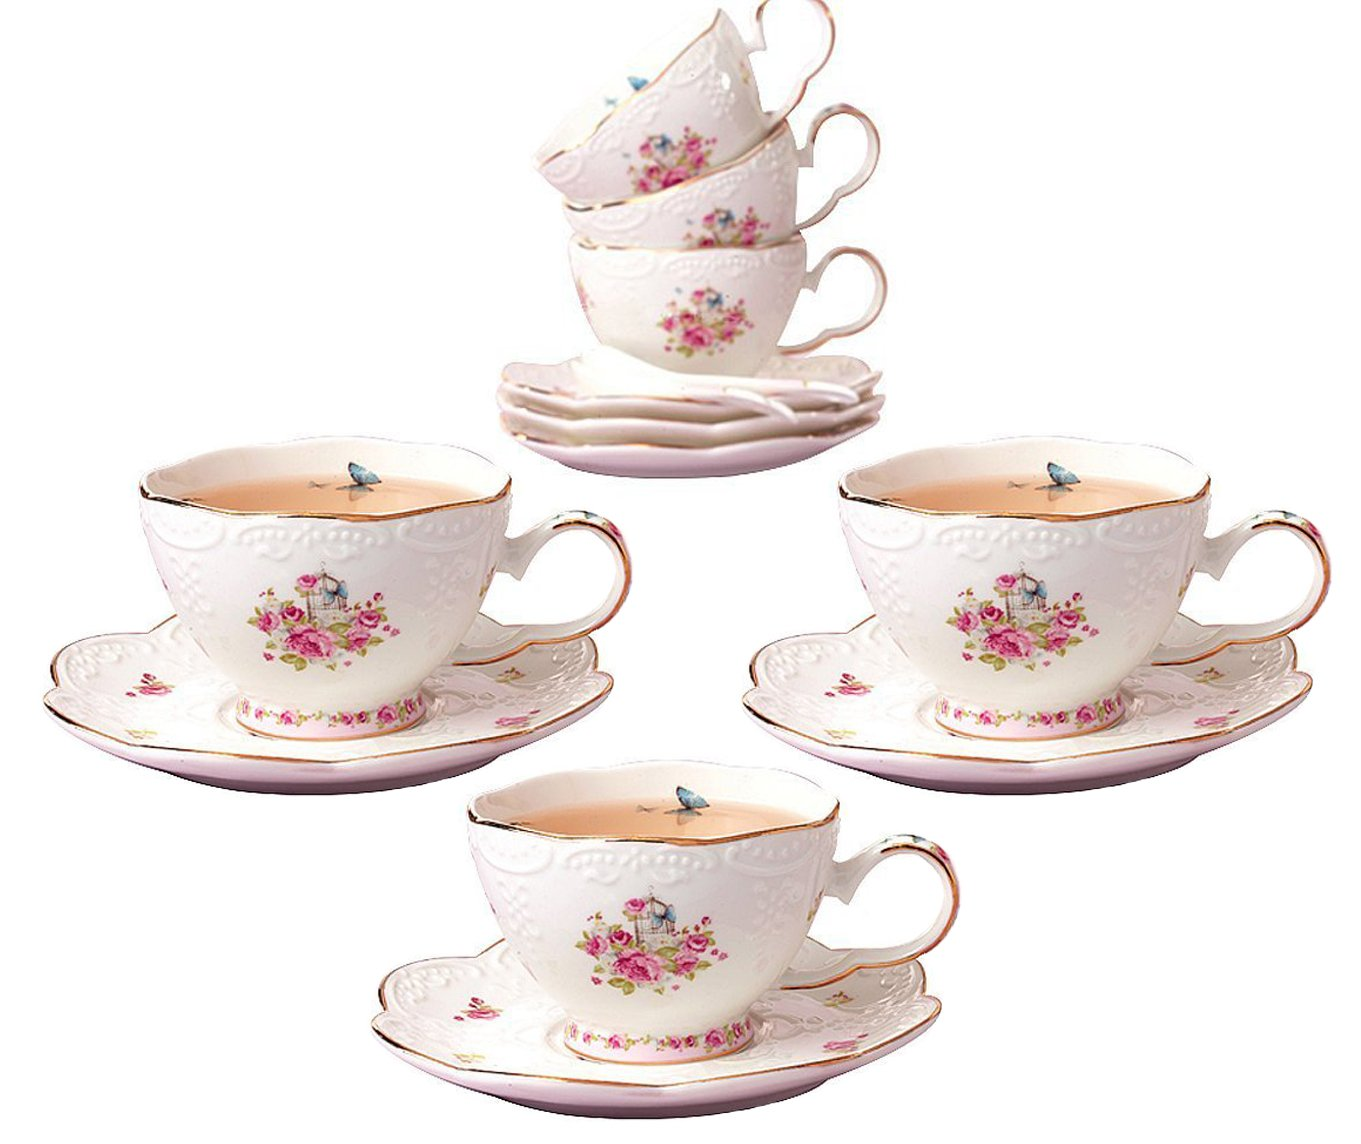 jusalpha porcelain tea cup and saucer set coffee cup set with saucer and spoon 636941126020 ebay. Black Bedroom Furniture Sets. Home Design Ideas